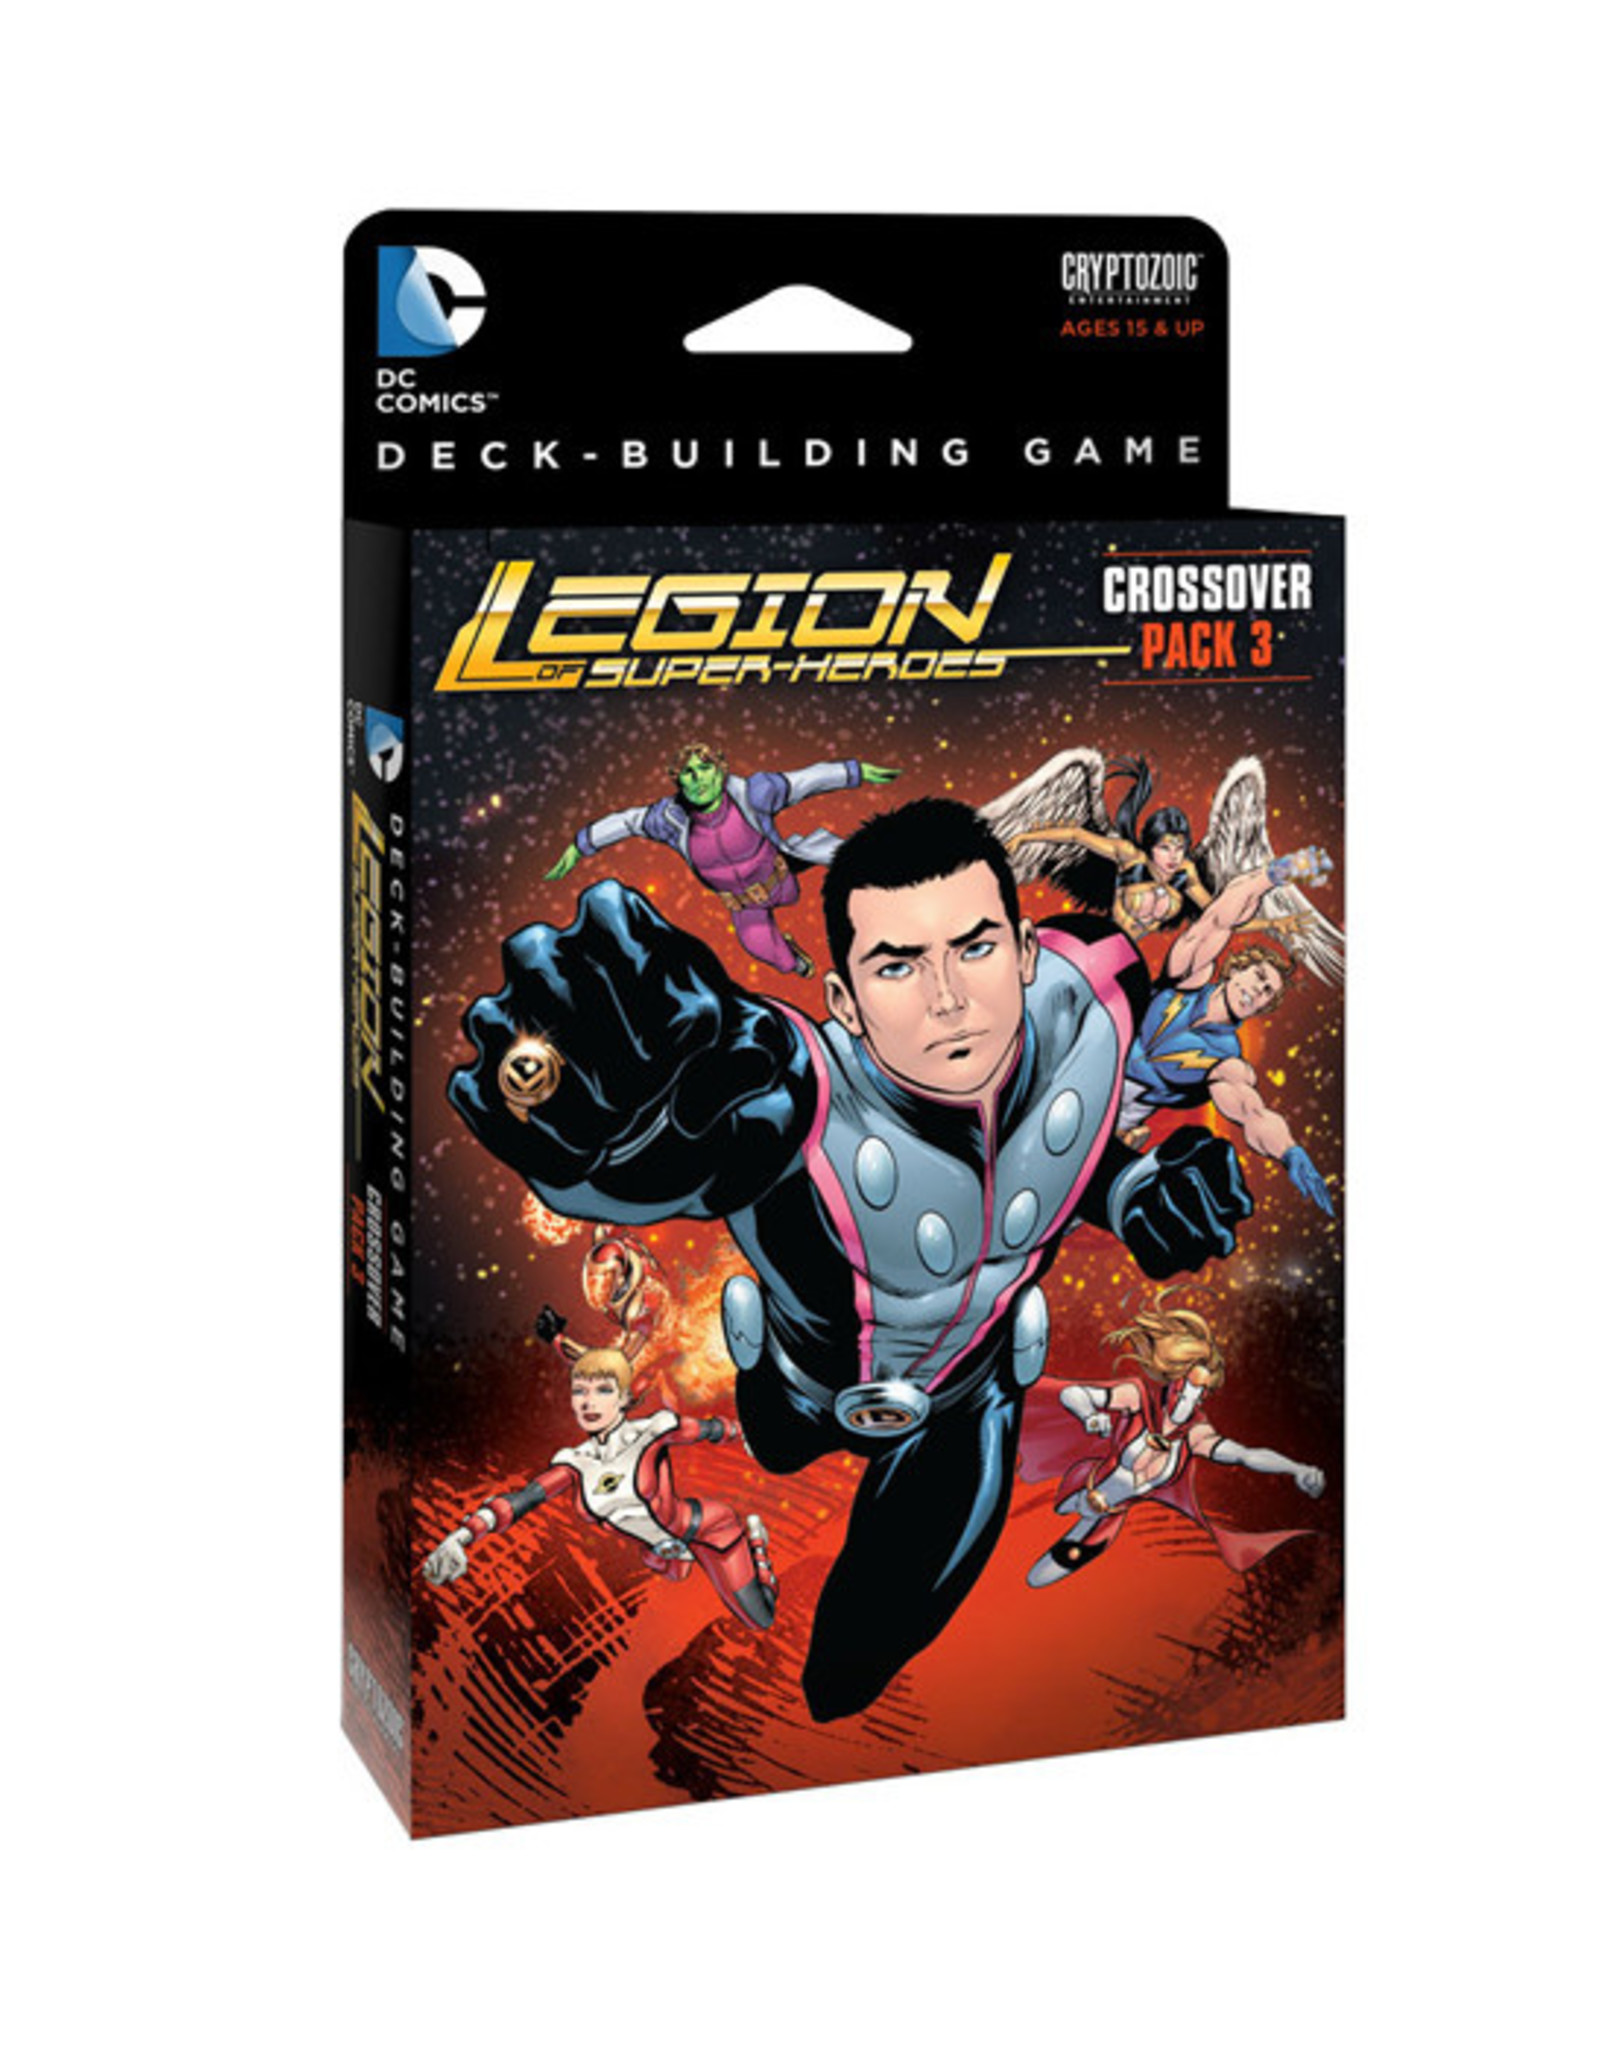 DC Deck Building Game: Crossover Pack 3 - Legion of Super-Heroes